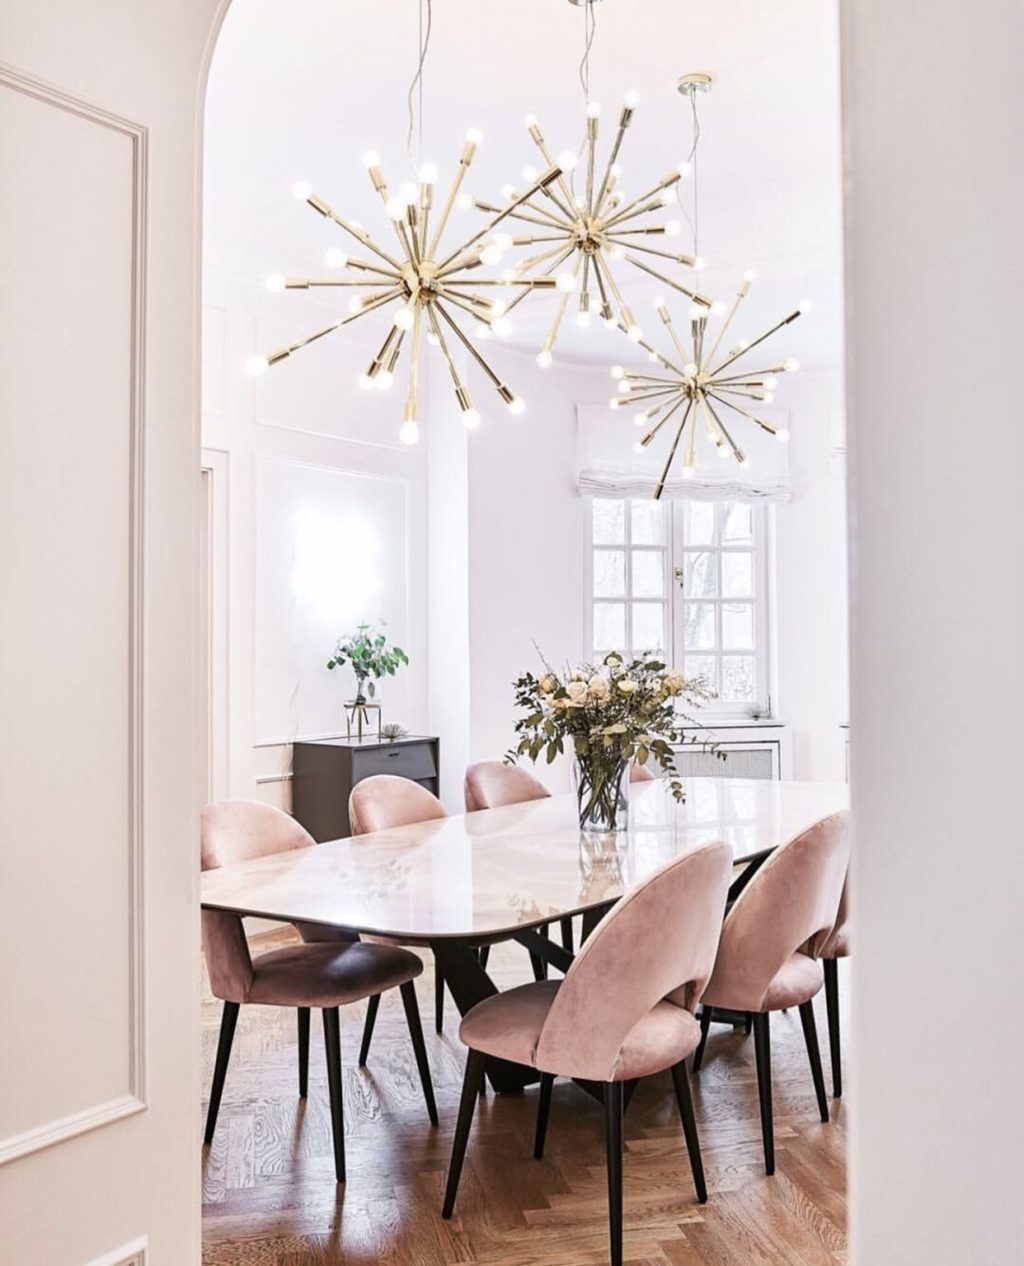 Modern Dining Room Ideas Decor 20 | Dining room decor